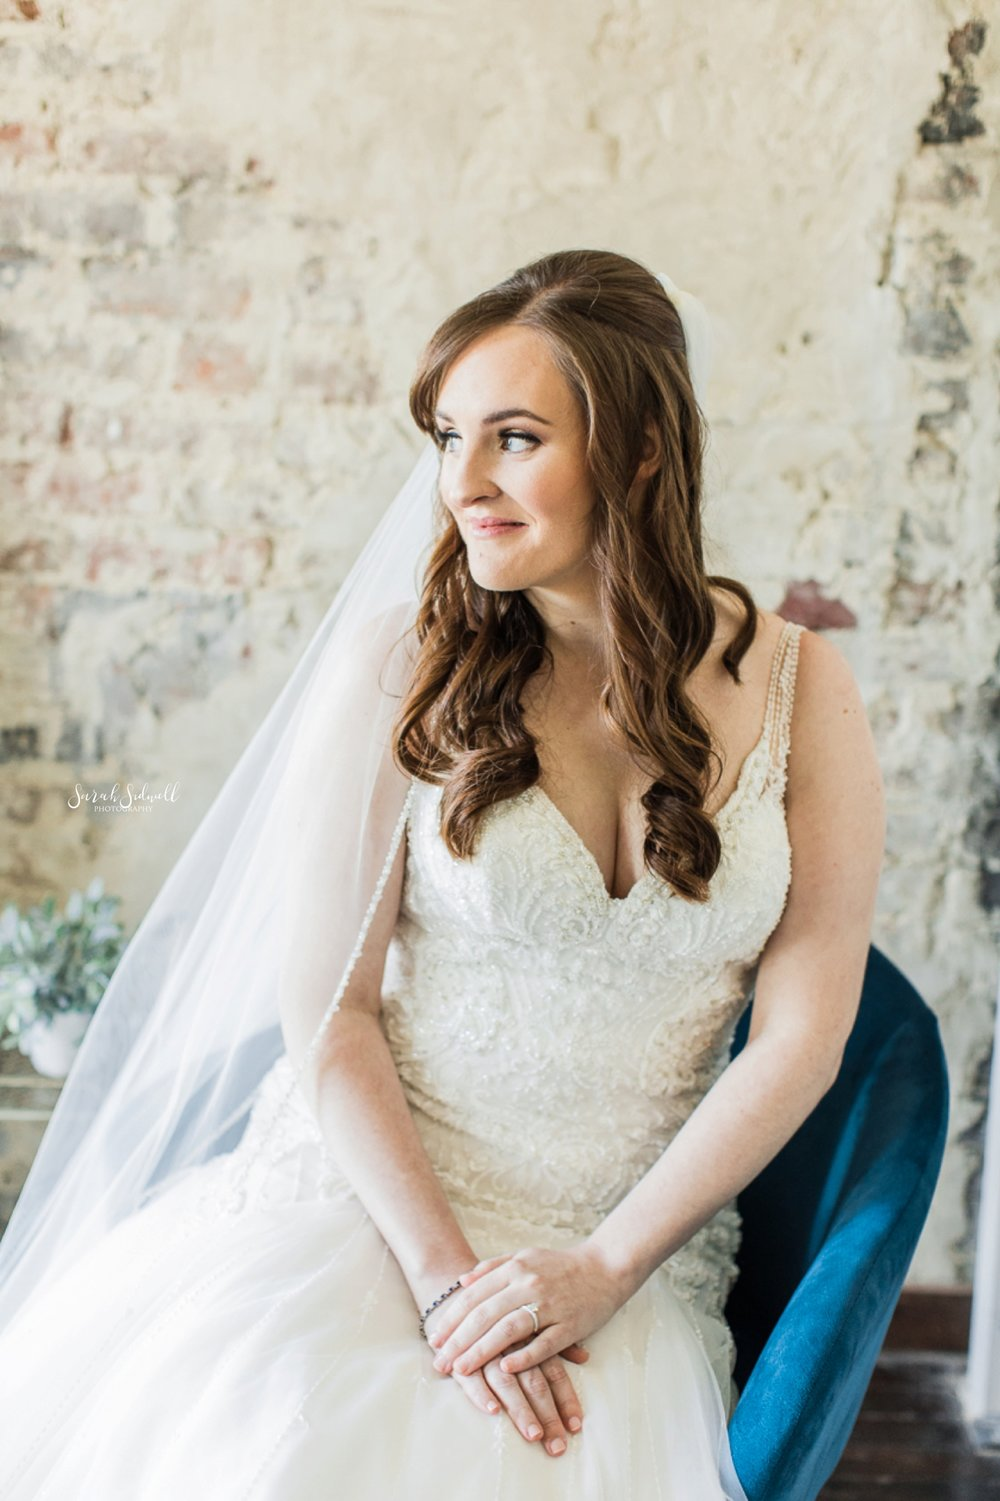 A woman sits in a chair while wearing her wedding dress.